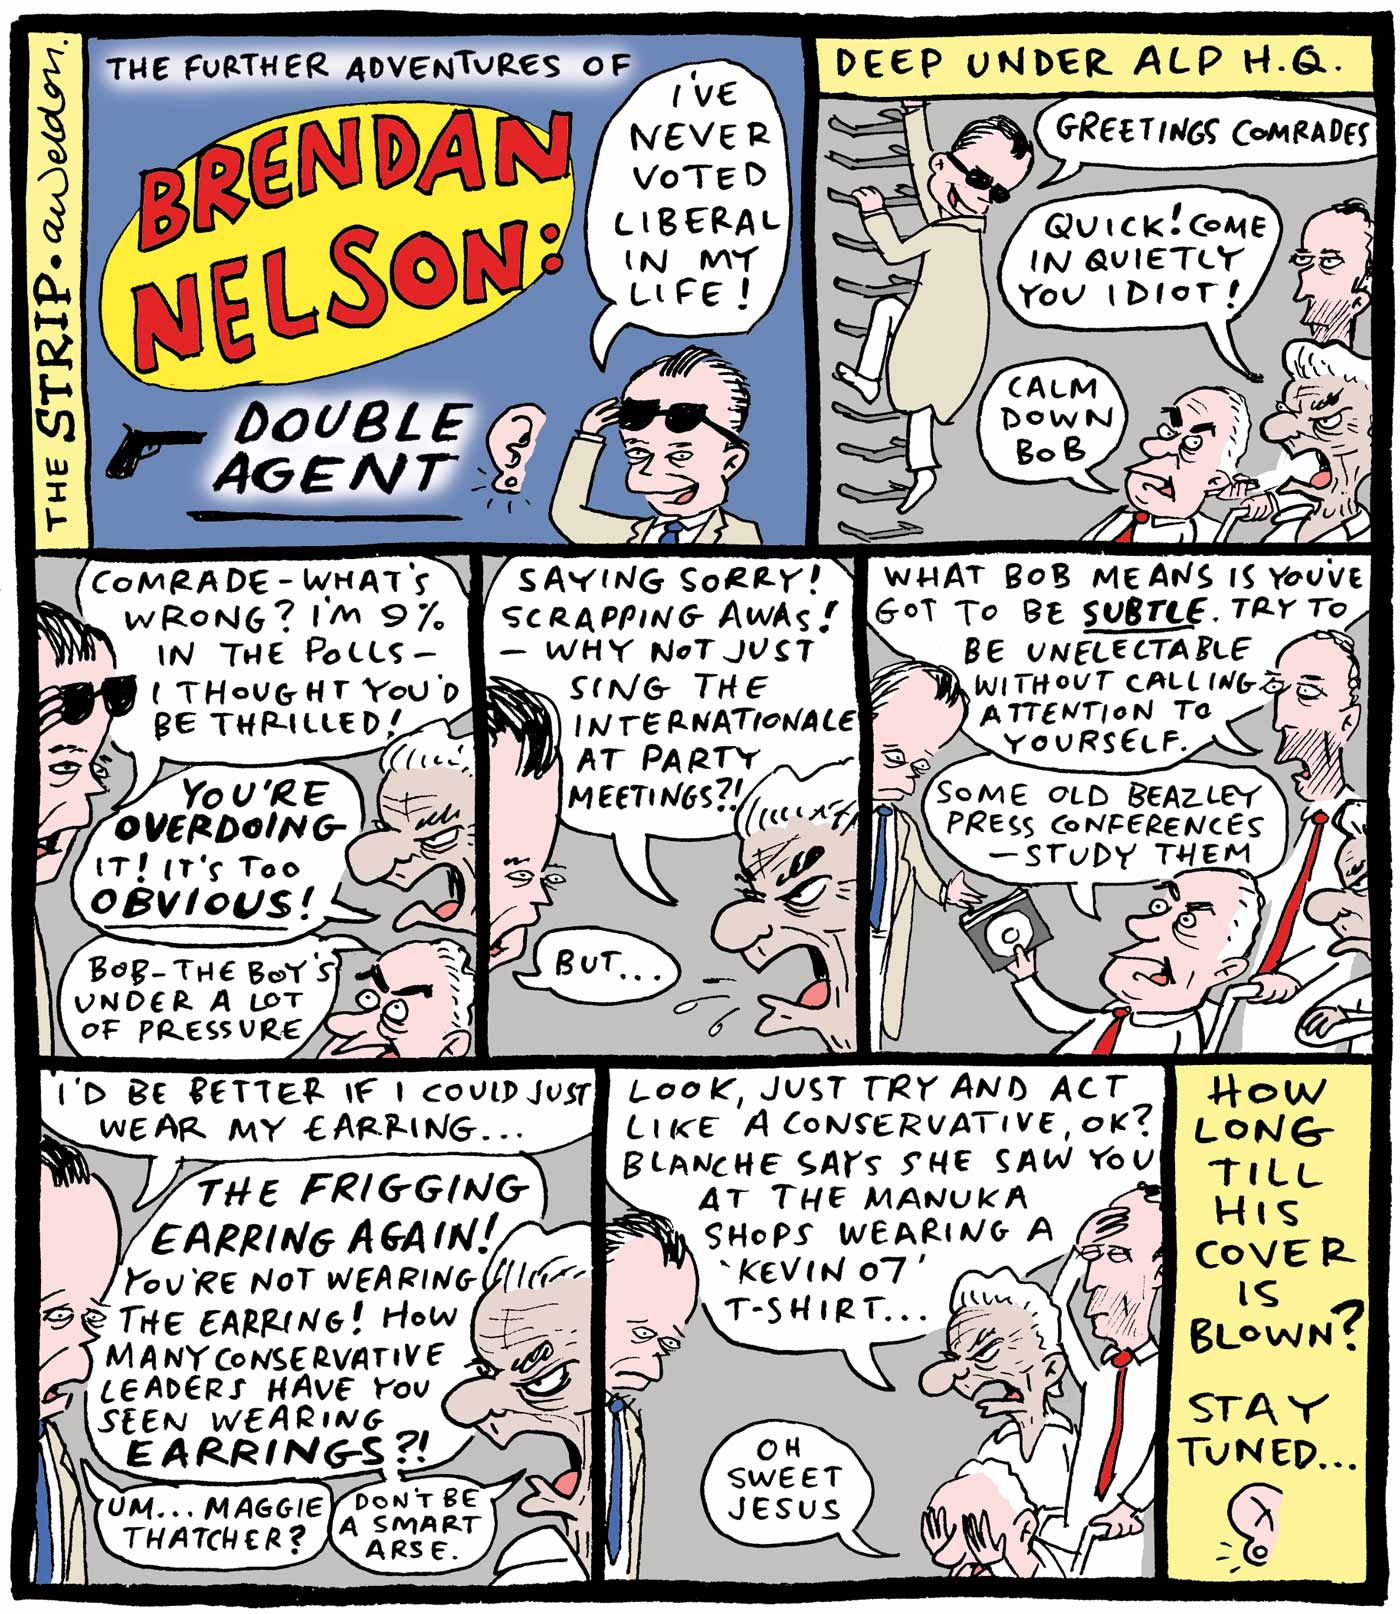 "Eight panel comic strip showing Brendan Nelson dressed as a double agent in trench coat and dark glasses. He visits Bob Hawke, Paul Keating and Gough Whitlam in the underground ALP headquarters.     Comic strip top left: 'The Further Adventures of Brendan Nelson: Double Agent' showing Nelson looking out from under dark glasses and saying 'I've never voted Liberal in my life!', beside a close up illustration of an ear with an earring.     Top right: The text 'Deep under ALP HQ' is at the top of the panel. Nelson, wearing a trench coat and dark glasses, climbs down wall-mounted ladder rungs and says 'Greetings comrades'. Bob Hawke says ''Quick! Come in quietly you idiot!' Gough Whitlam, in a wheelchair being pushed by Paul Keating, says 'Calm down Bob'.     Second row left: Brendan looks from under glasses and says 'Comrade – what's wrong? I'm nine per cent in the polls – I thought you'd be thrilled!' Hawke says 'You're overdoing (bold) it! It's too obvious (bold)!) Whitlam says 'Bob – the boy's under a lot of pressure'.    Second row centre: Bob spits 'Saying sorry! Scrapping AWAs! – Why not just sing the Internationale at party meetings?!' to which Nelson responds 'But...'    Second row right: Keating says 'What Bob means is you've got to be subtle (bold and underlined). Try to be unelectable without calling attention to yourself'. Whitlam hands Nelson a CD and says 'Some old Beazley press conferences – study them'.     Third row left: Nelson says 'I'd be better if I could just wear my earring...' Hawke says 'The frigging earring again! You're not wearing the earring! How many conservative leaders have you seen wearing earrings?!' Nelson says ""Um... Maggie Thatcher' and Hawke responds 'Don't be a smart arse'.    Third row centre: Keating holds his hand to his forehead, Hawke says 'Look, just try and act like a conservative, OK? Blanche says she saw you at the Manuka shops wearing a 'Kevin 07' t-shirt'. Whitlam covers both eyes with his hands and says 'Oh sweet Jesus' while Nelson looks downcast.     Third row right: 'How long till his cover is blown? Stay tuned ...' with an image of the ear and earring at the bottom.   - click to view larger image"